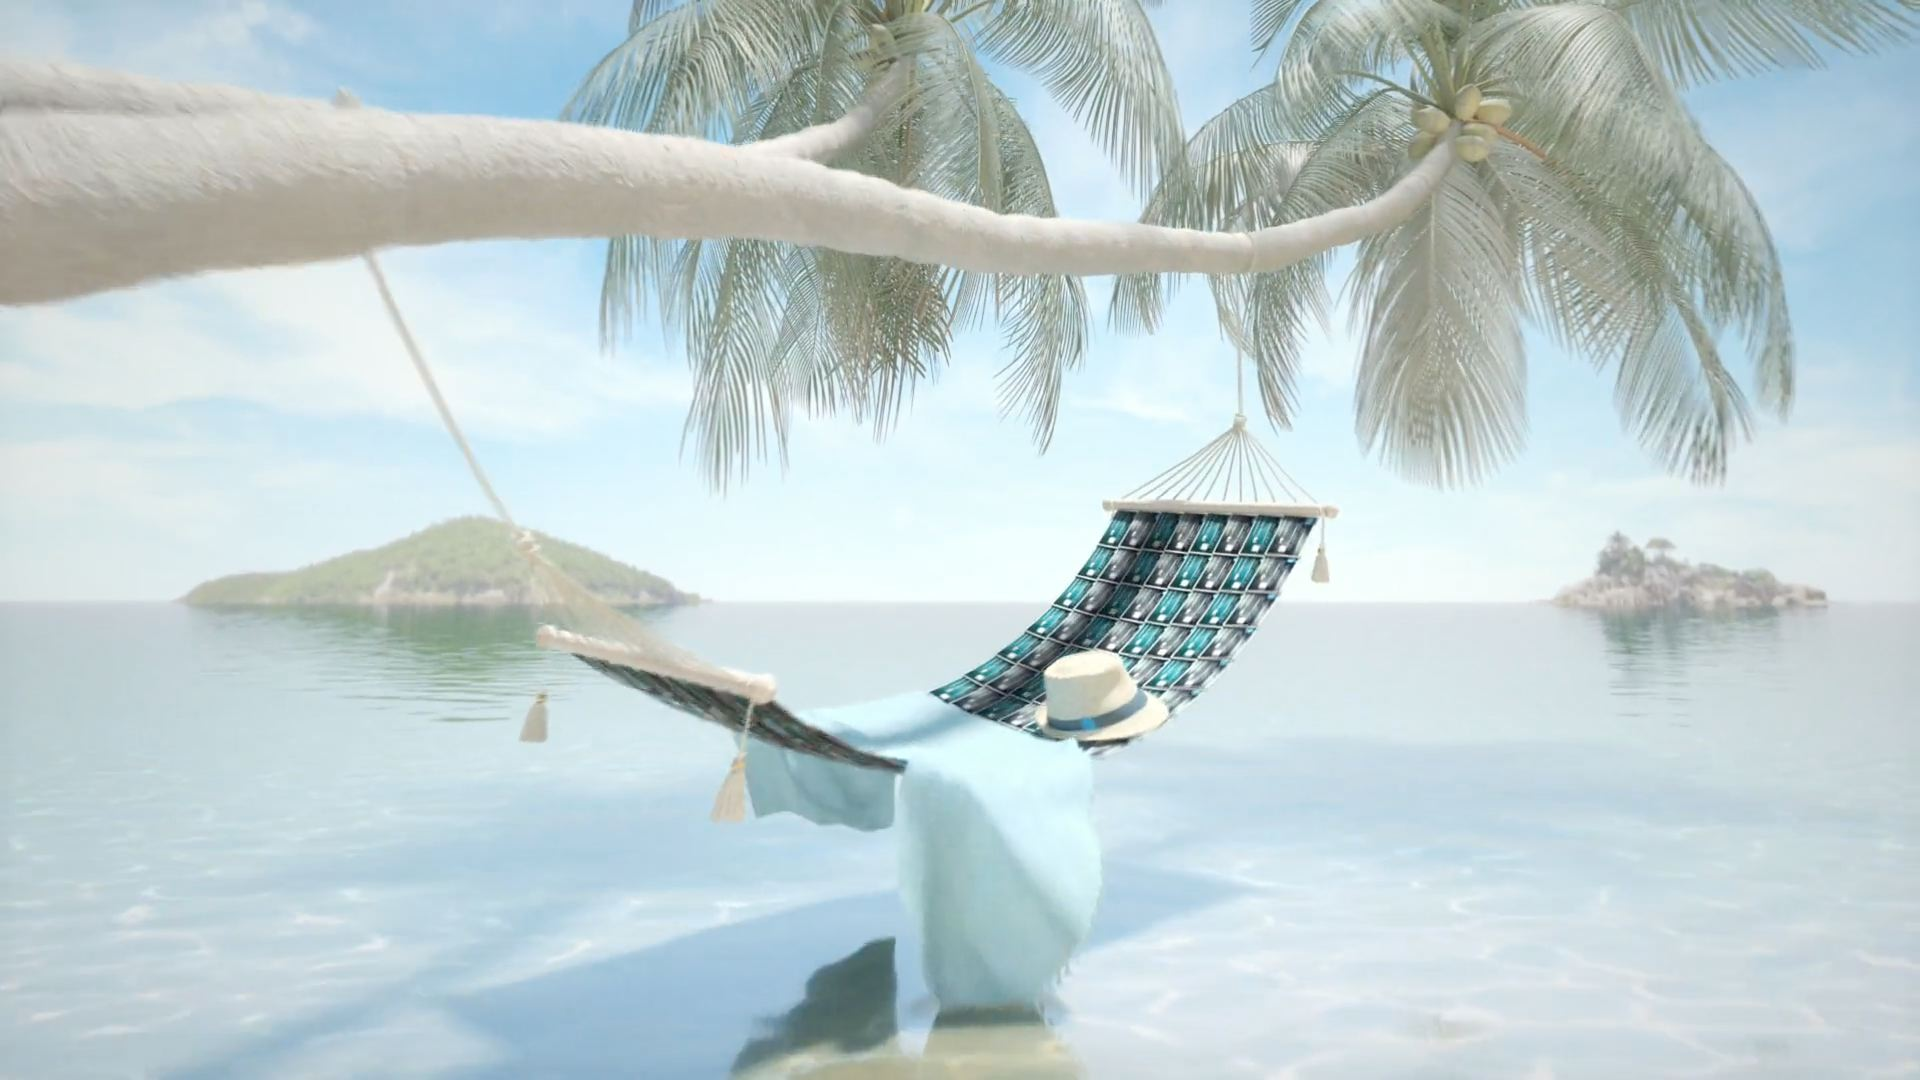 3D Animated Beach Scene